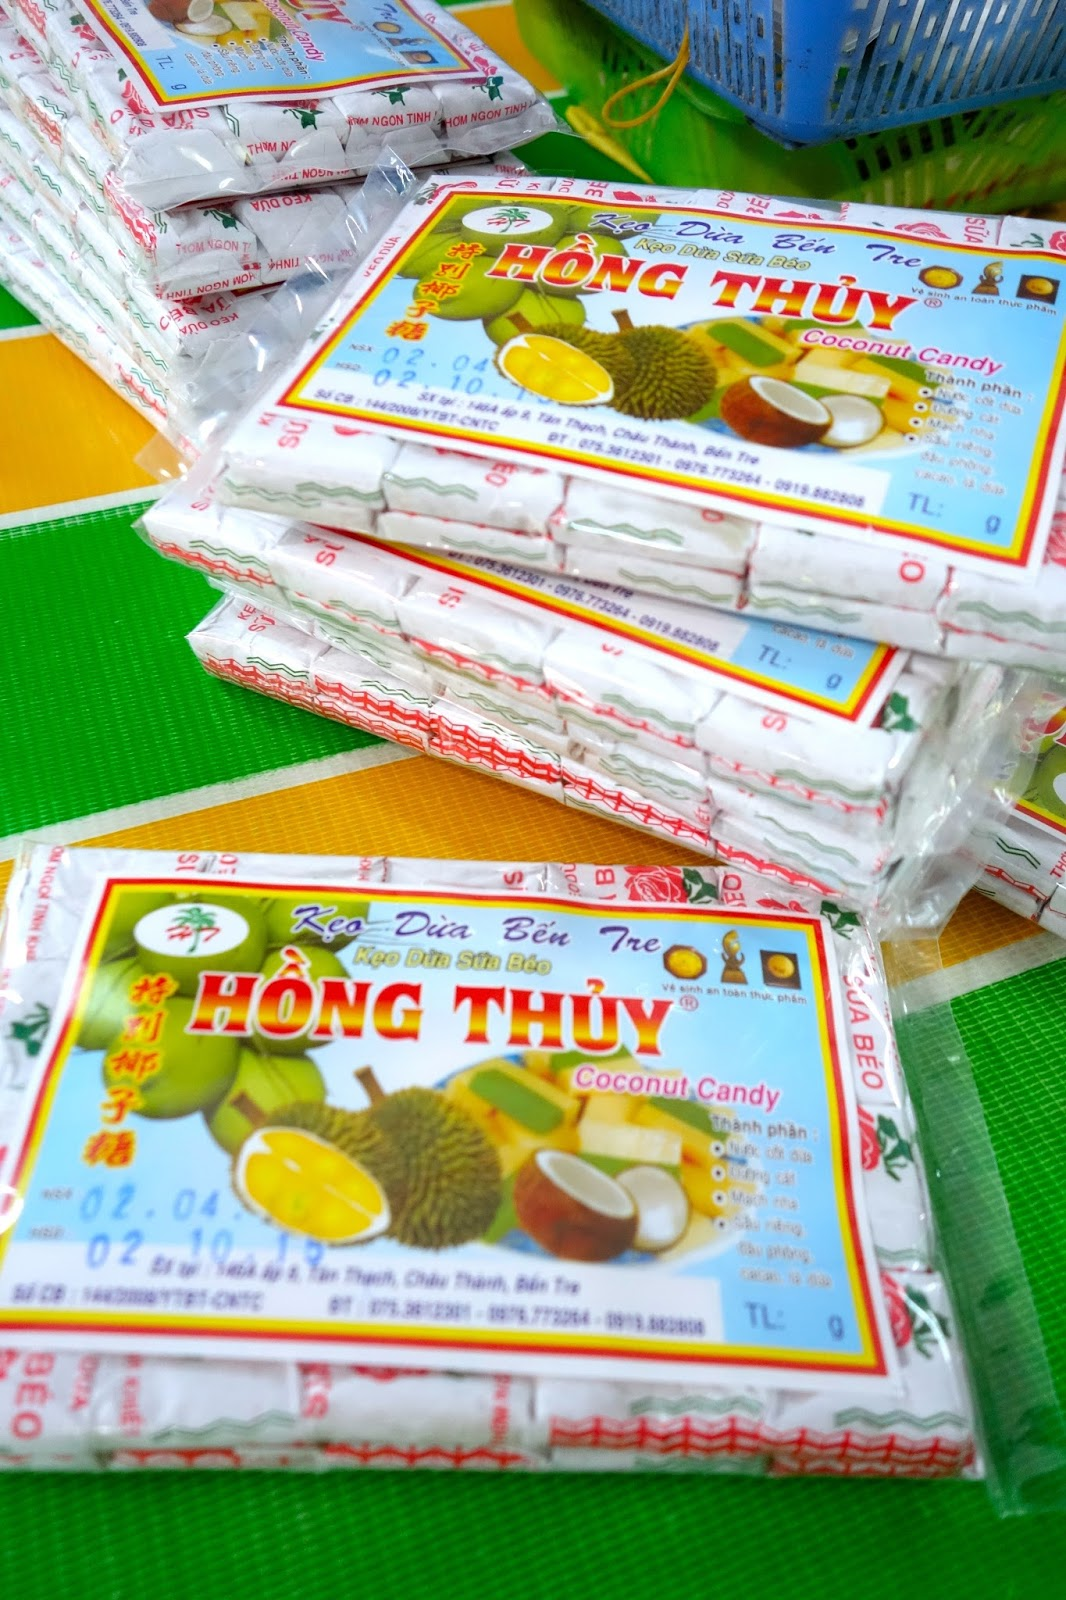 Vietnam coconut candy factory